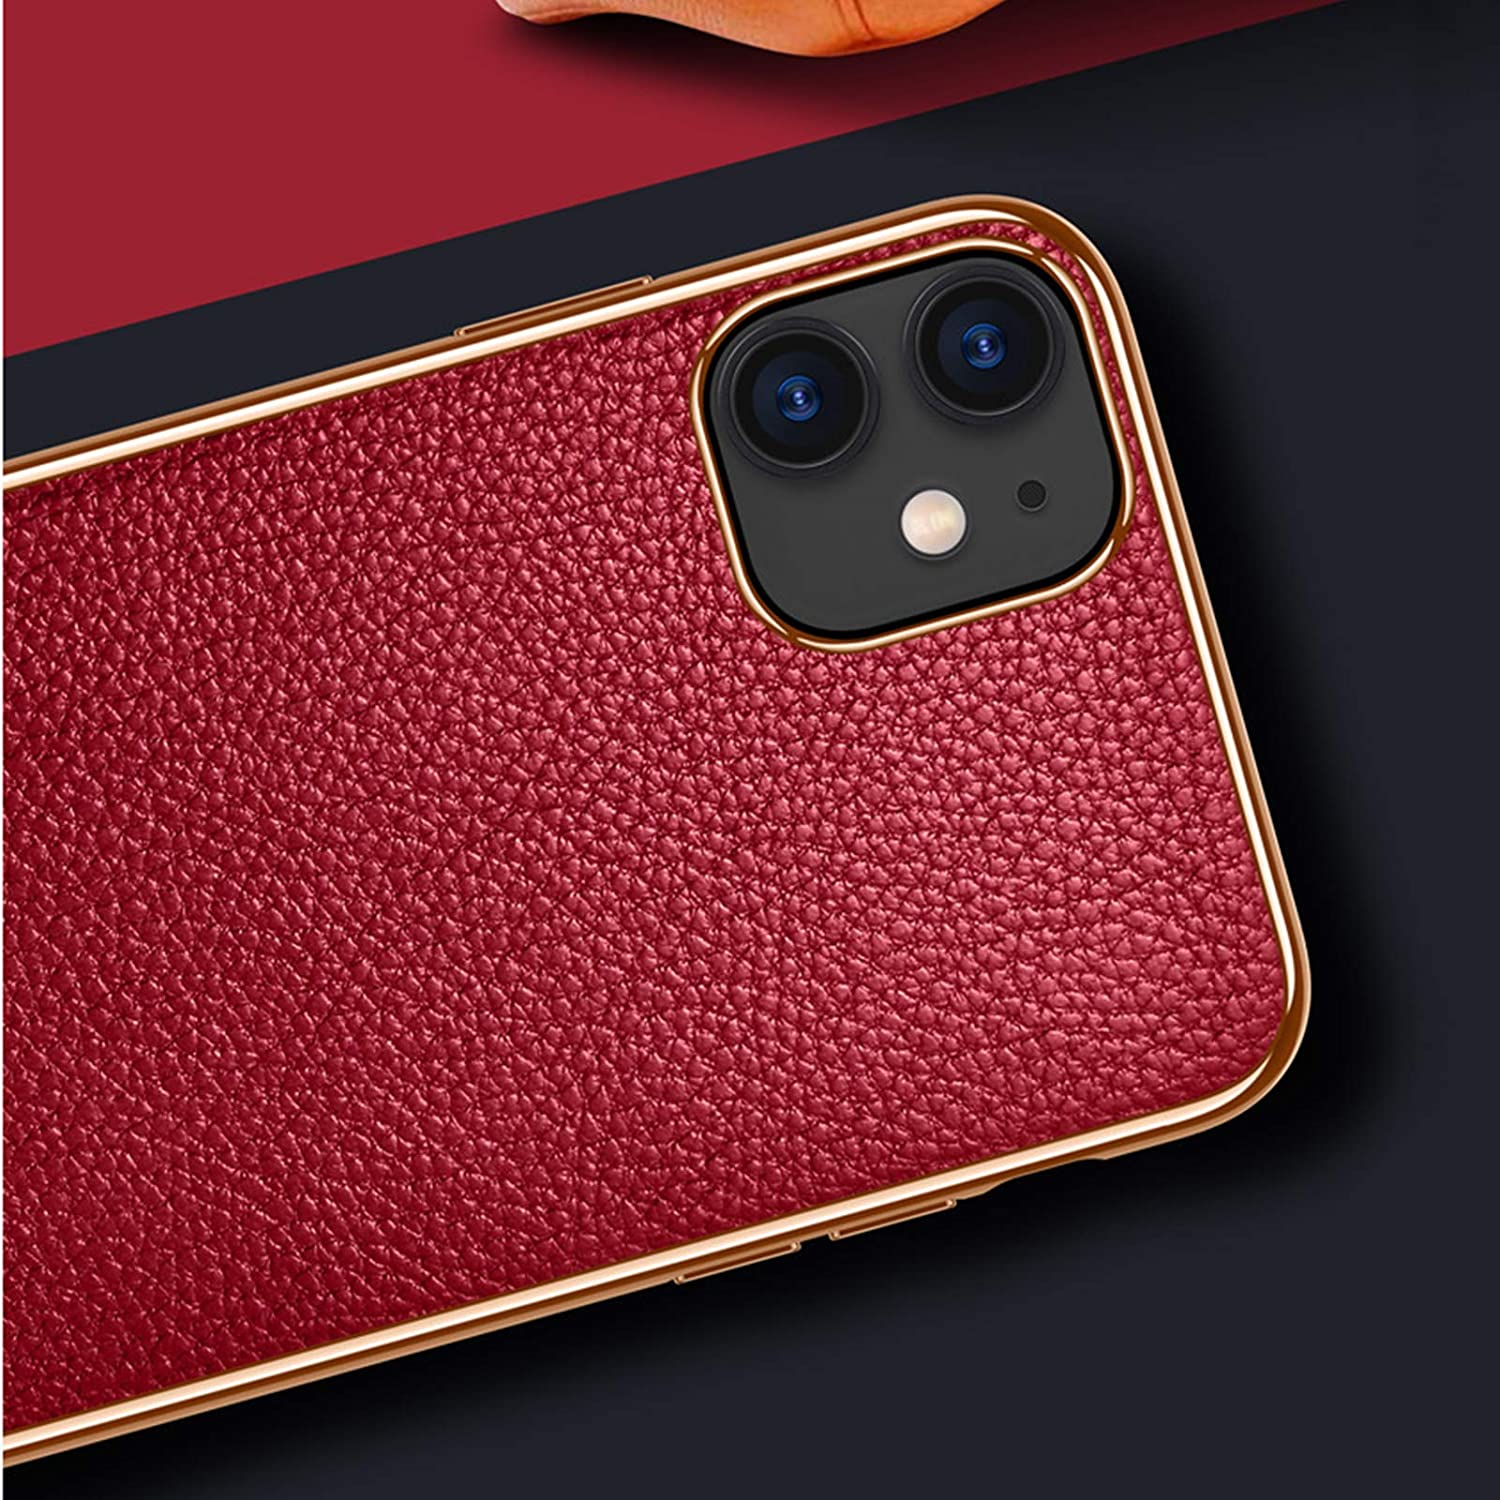 QGGESY Ultra-thin business leather grain mobile phone case protective case mobile phone protective cover suitable for iPhone 12 mini,iPhone 12 //12Pro,iPhone 12 Pro max series,